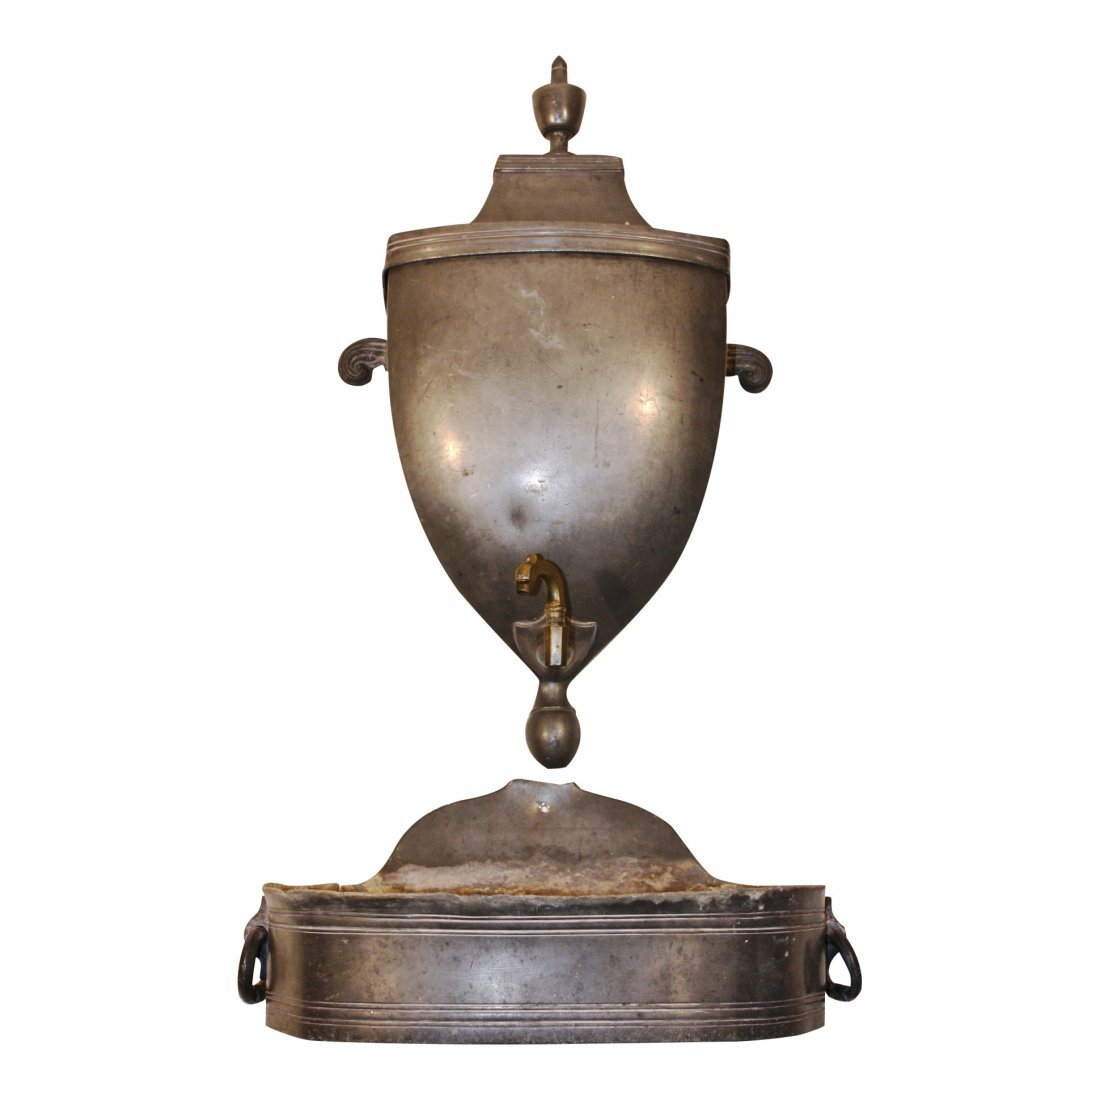 French Empire Pewter Lavabo